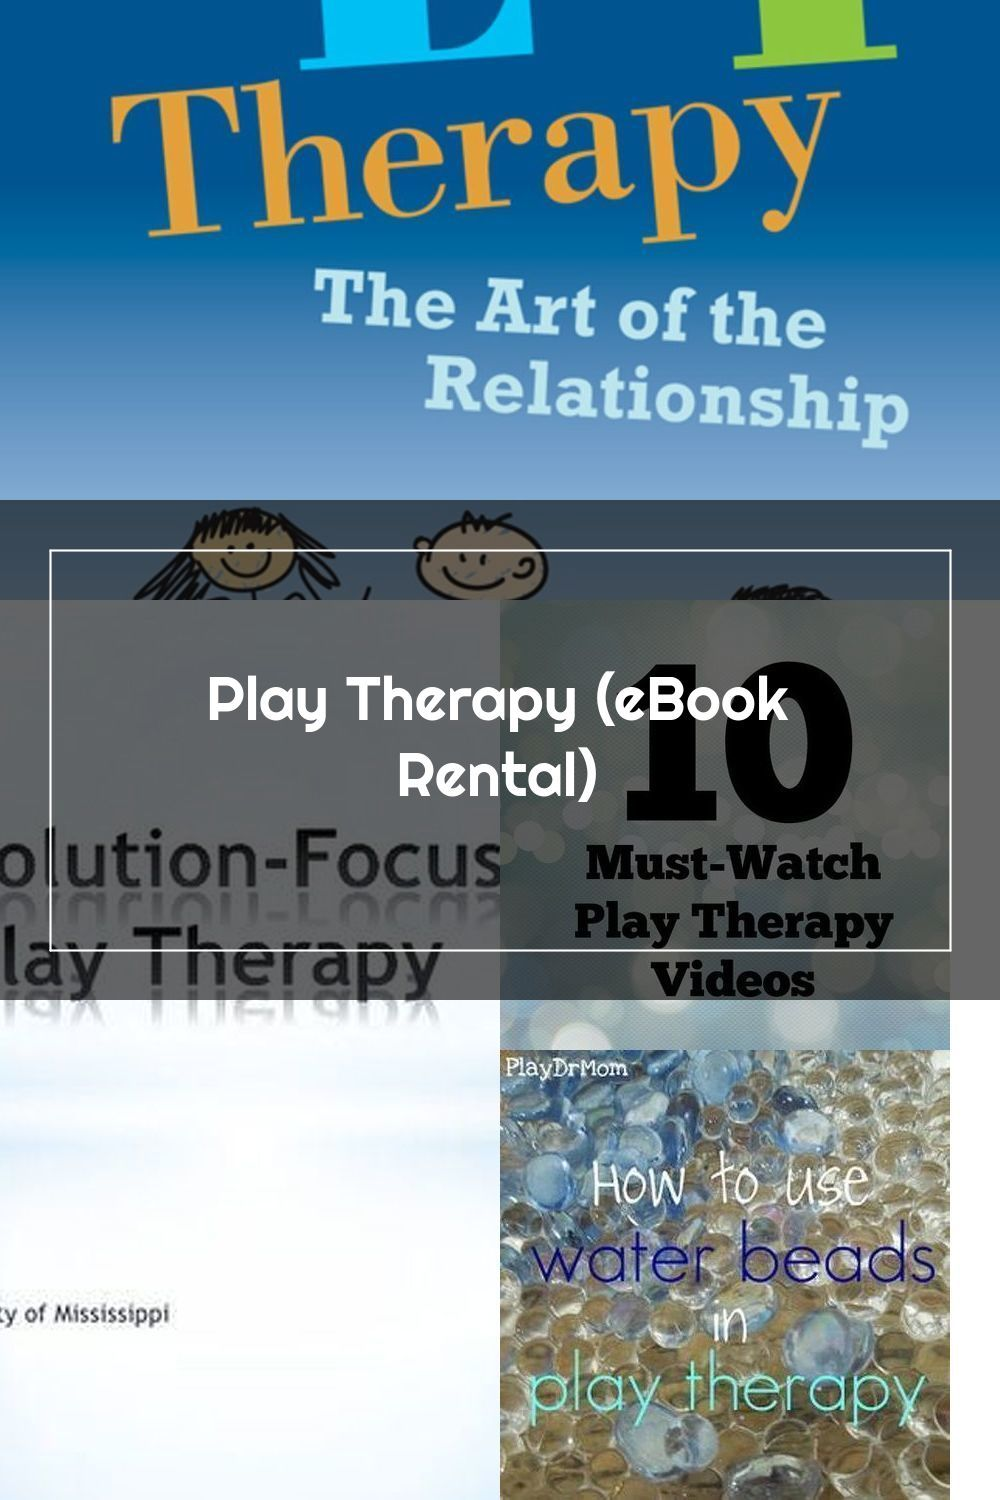 Play Therapy (eBook Rental) in 2020   Play therapy